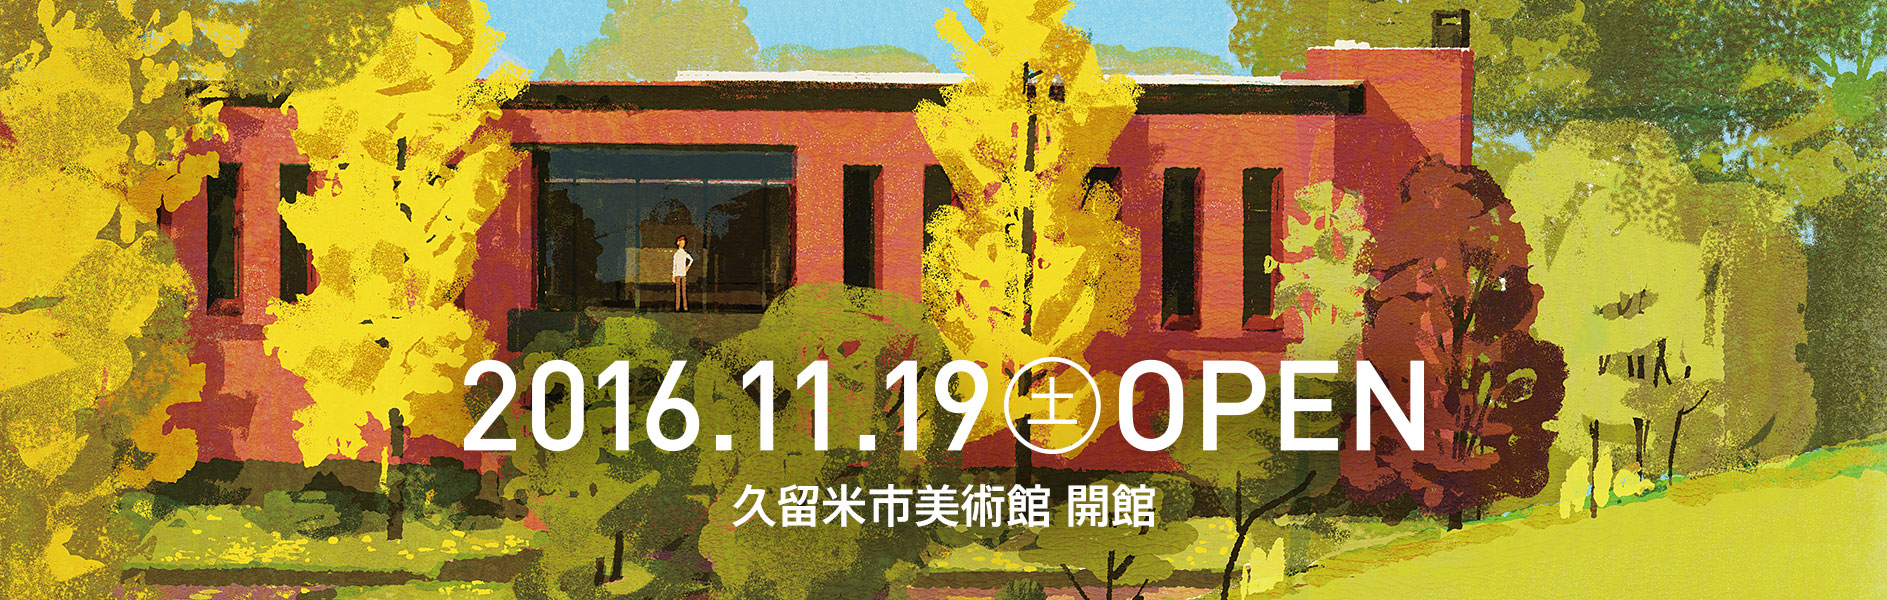 2016.11.19(Sat) KURUME CITY ART MUSEUM OPEN